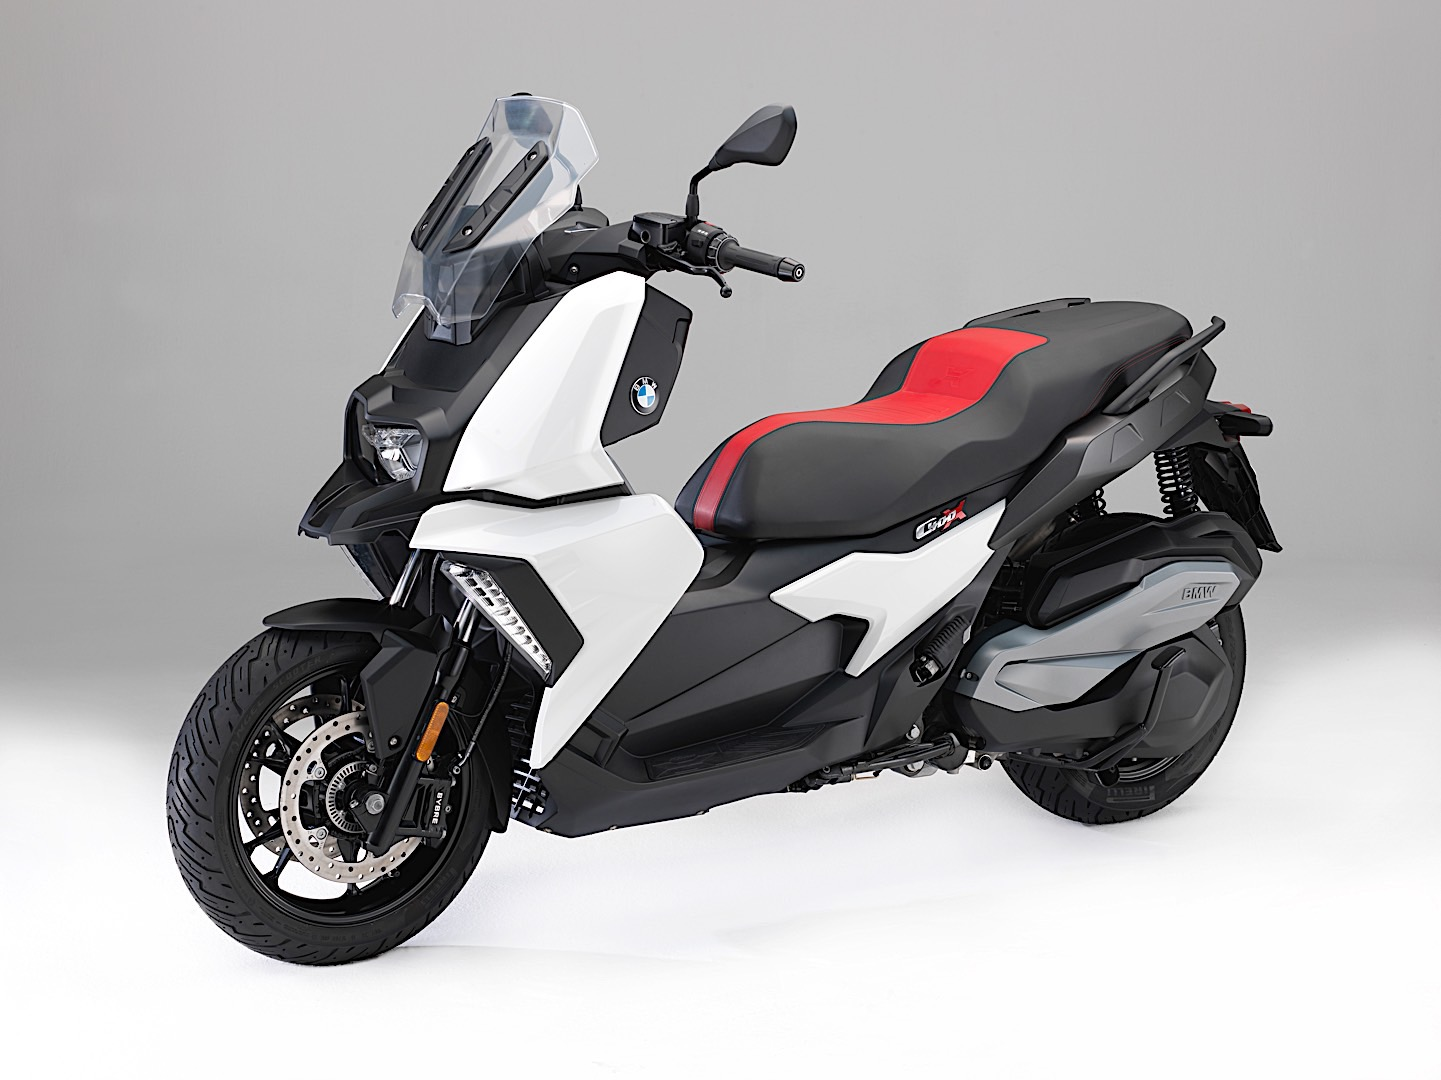 BMW Motorrad Launches Its First Sub-600CC Scooter At EICMA